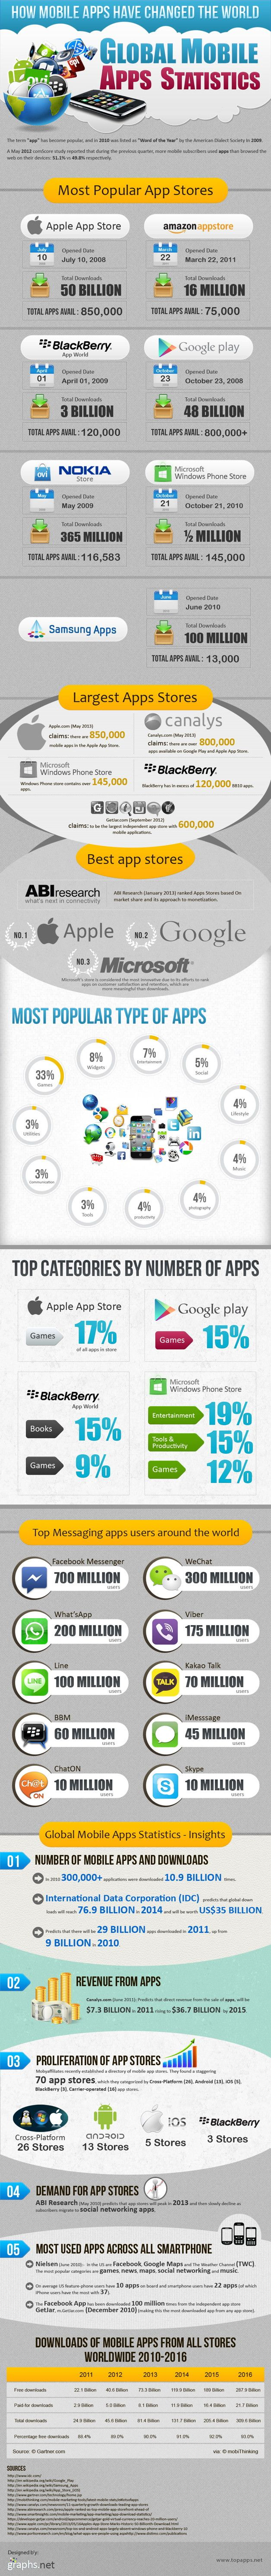 INFOGRAPHIC: How mobile apps have changed the world | Mobile content industry news | Mobile Entertainment